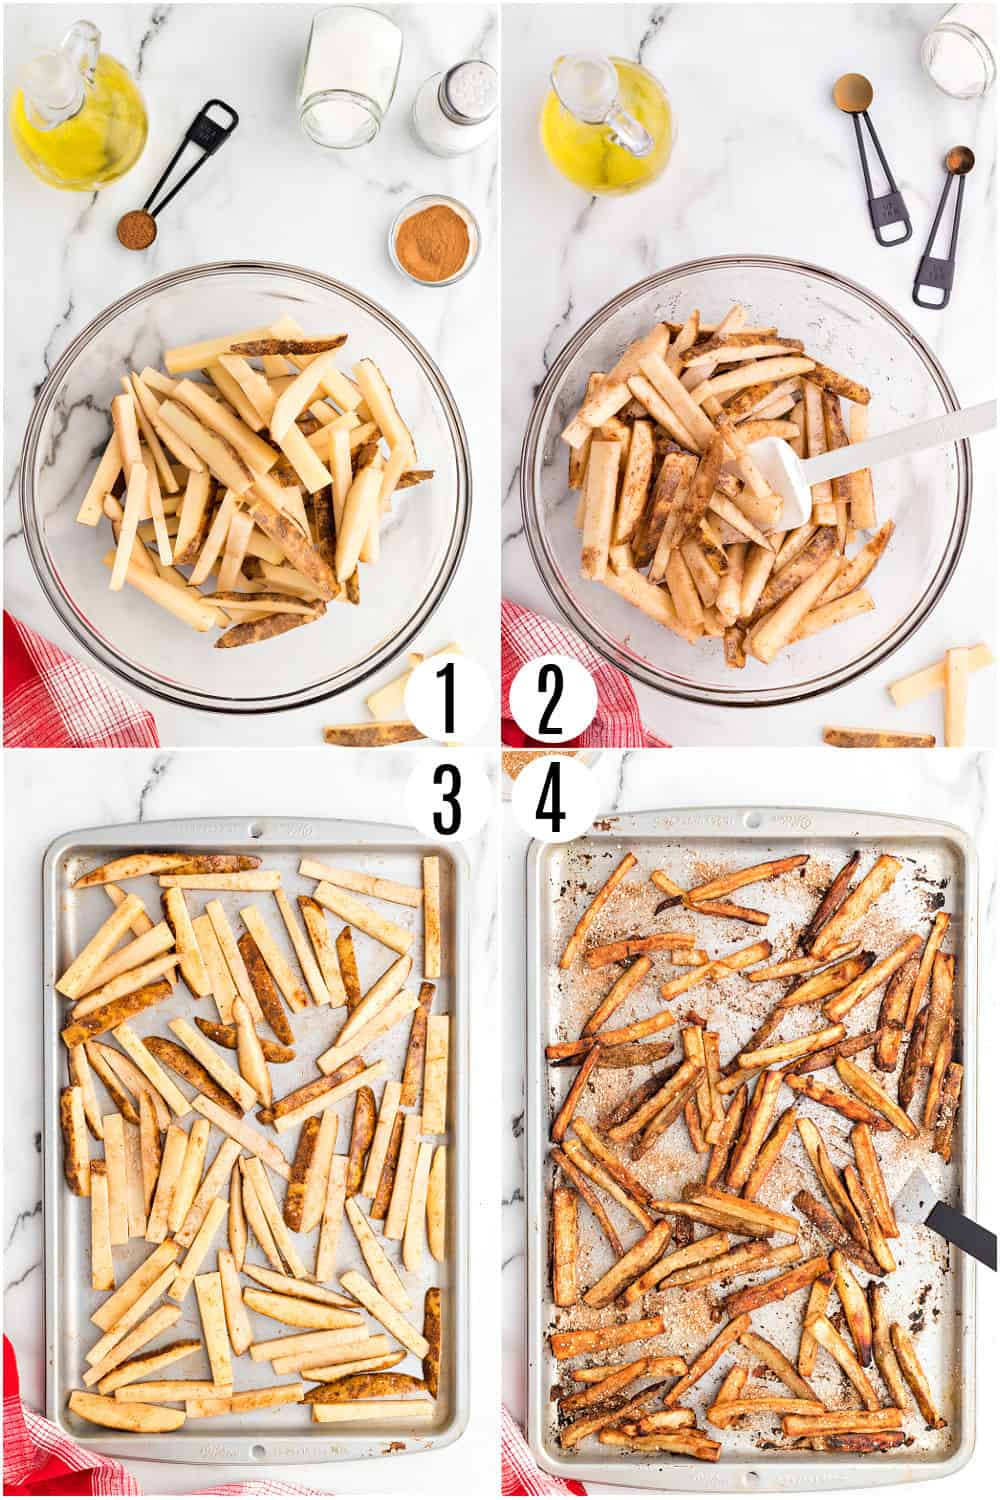 Step by step photos showing how to make baked french fries.